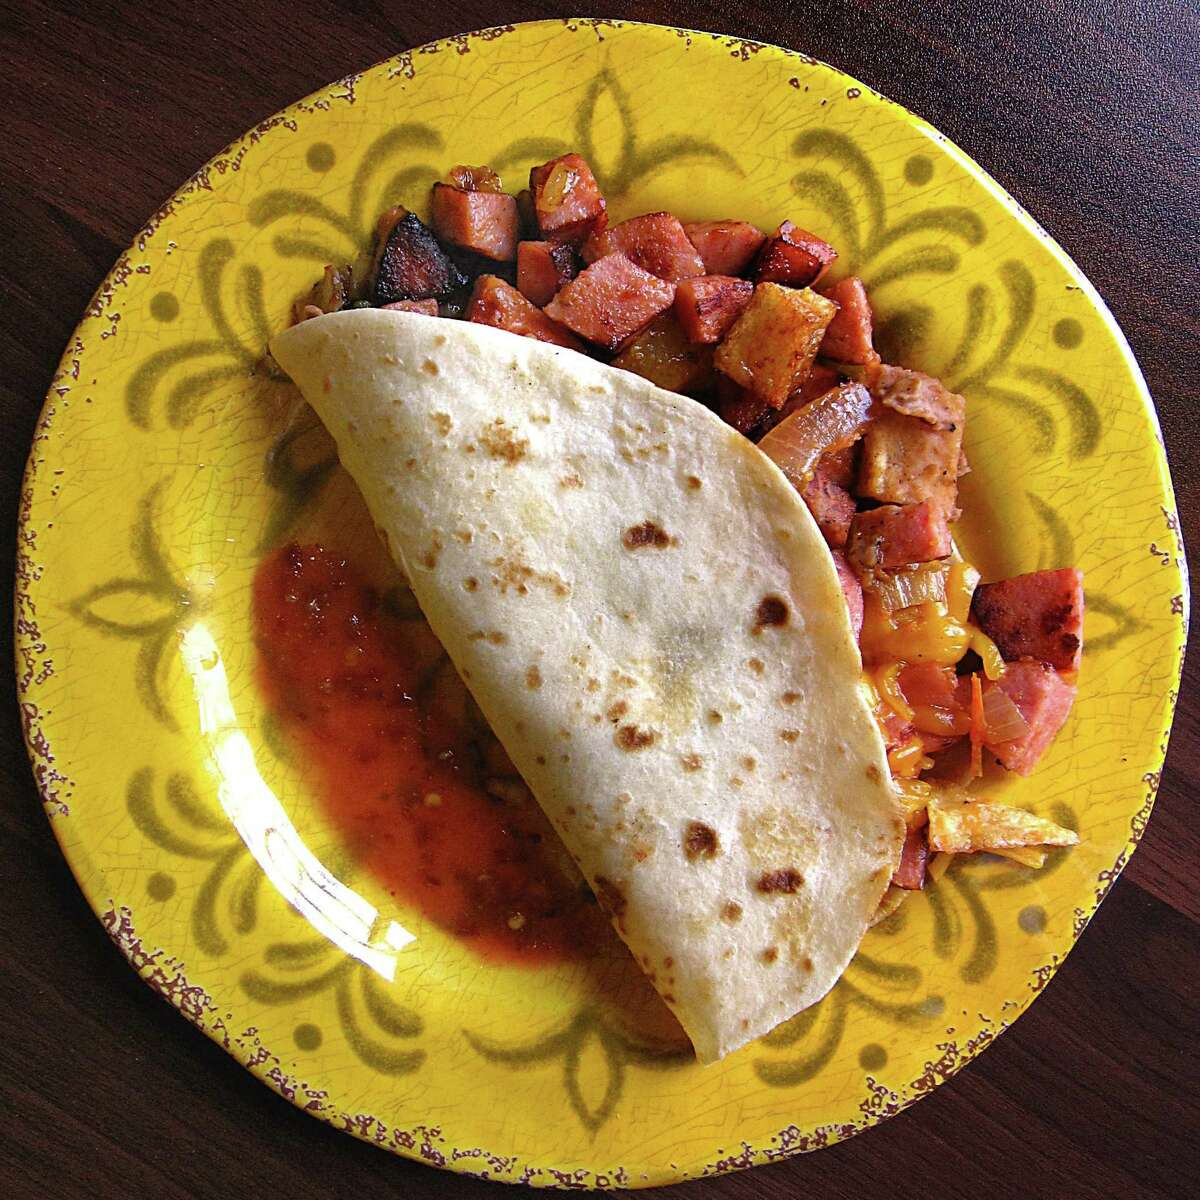 Taco Deluxe with country sausage, potatoes, beans, cheese and pico de gallo on a handmade flour tortilla from Natalie's Mexican Cafe.